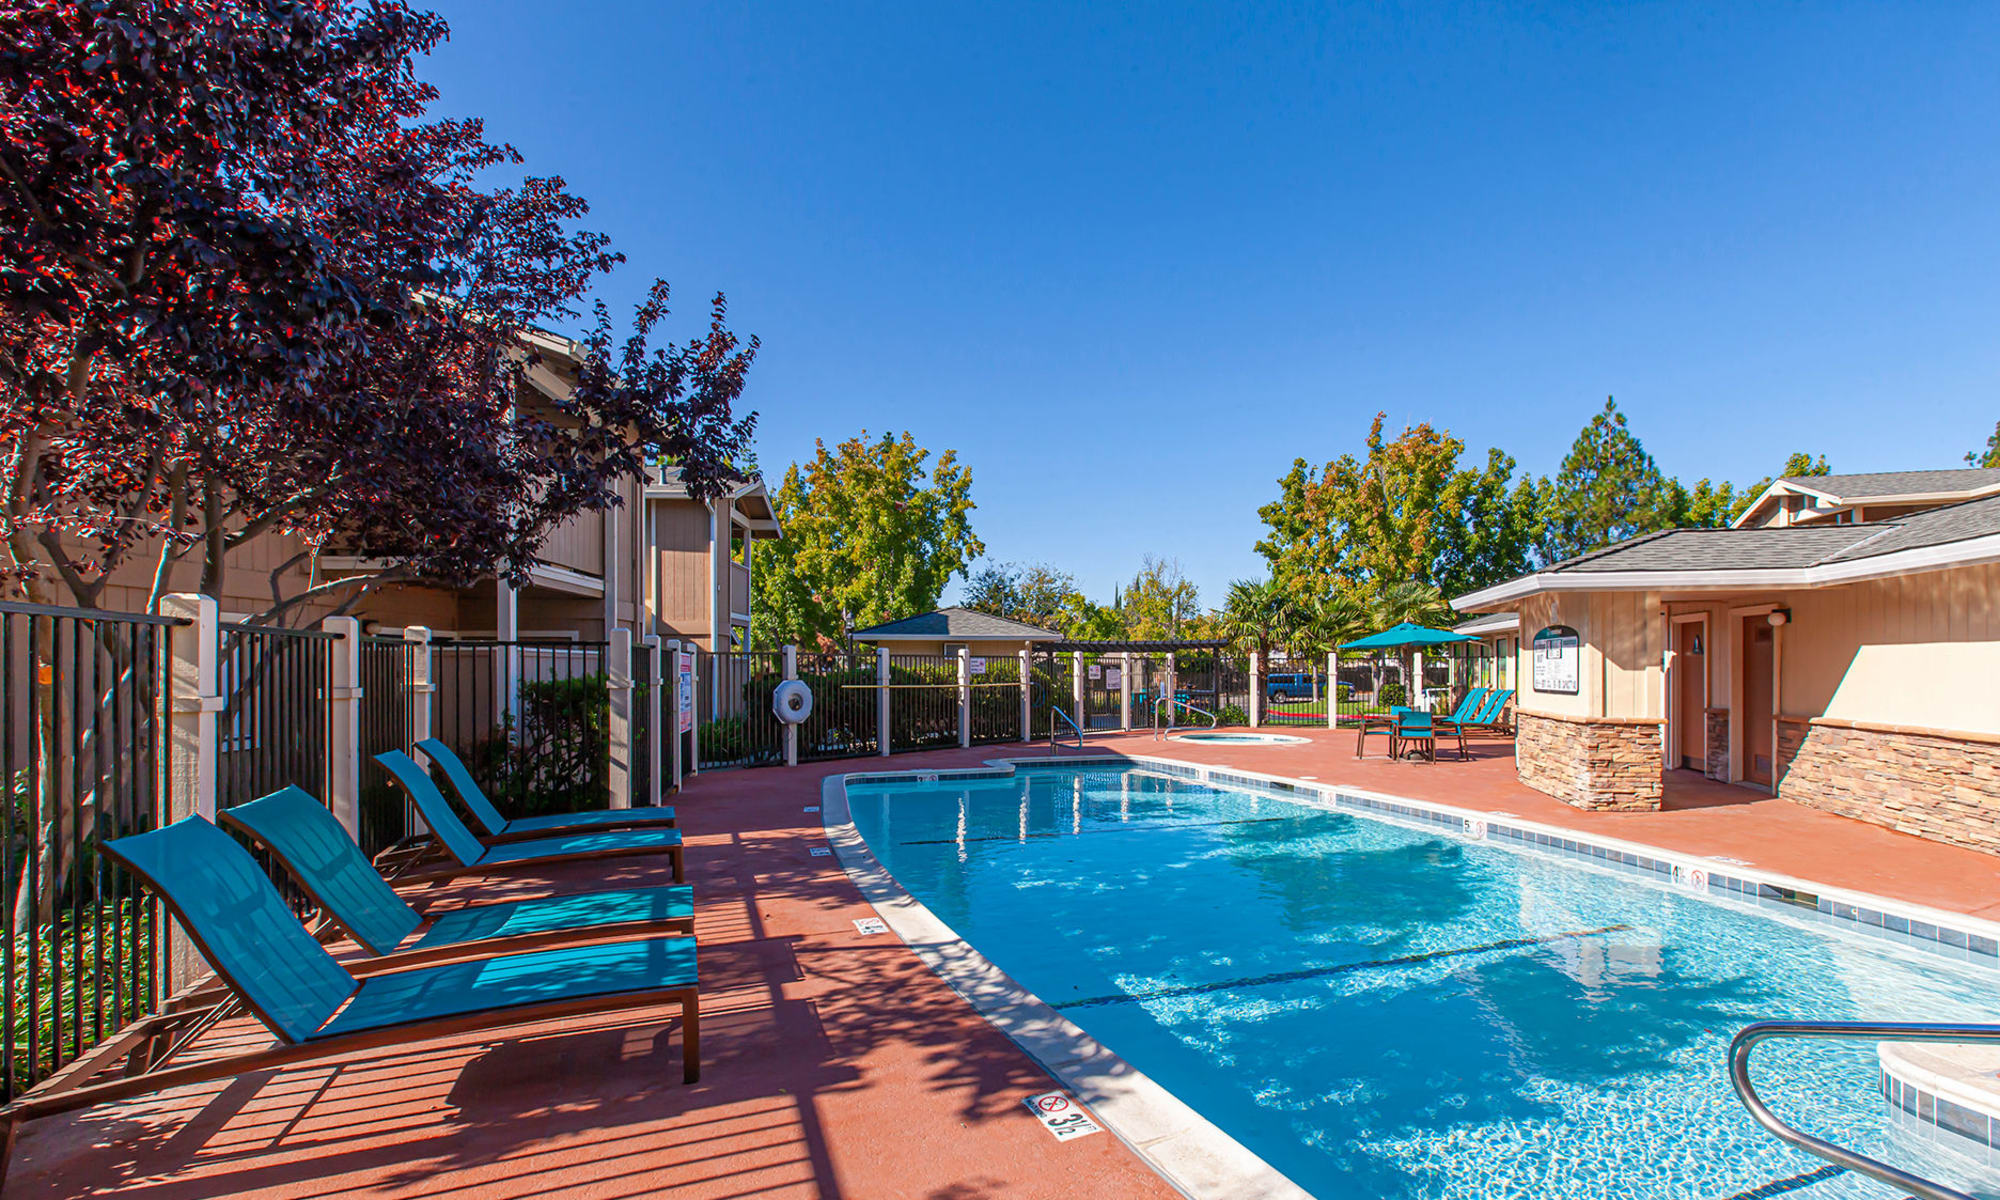 Sparkling Pool area with lounge chairs  in Vacaville, CA